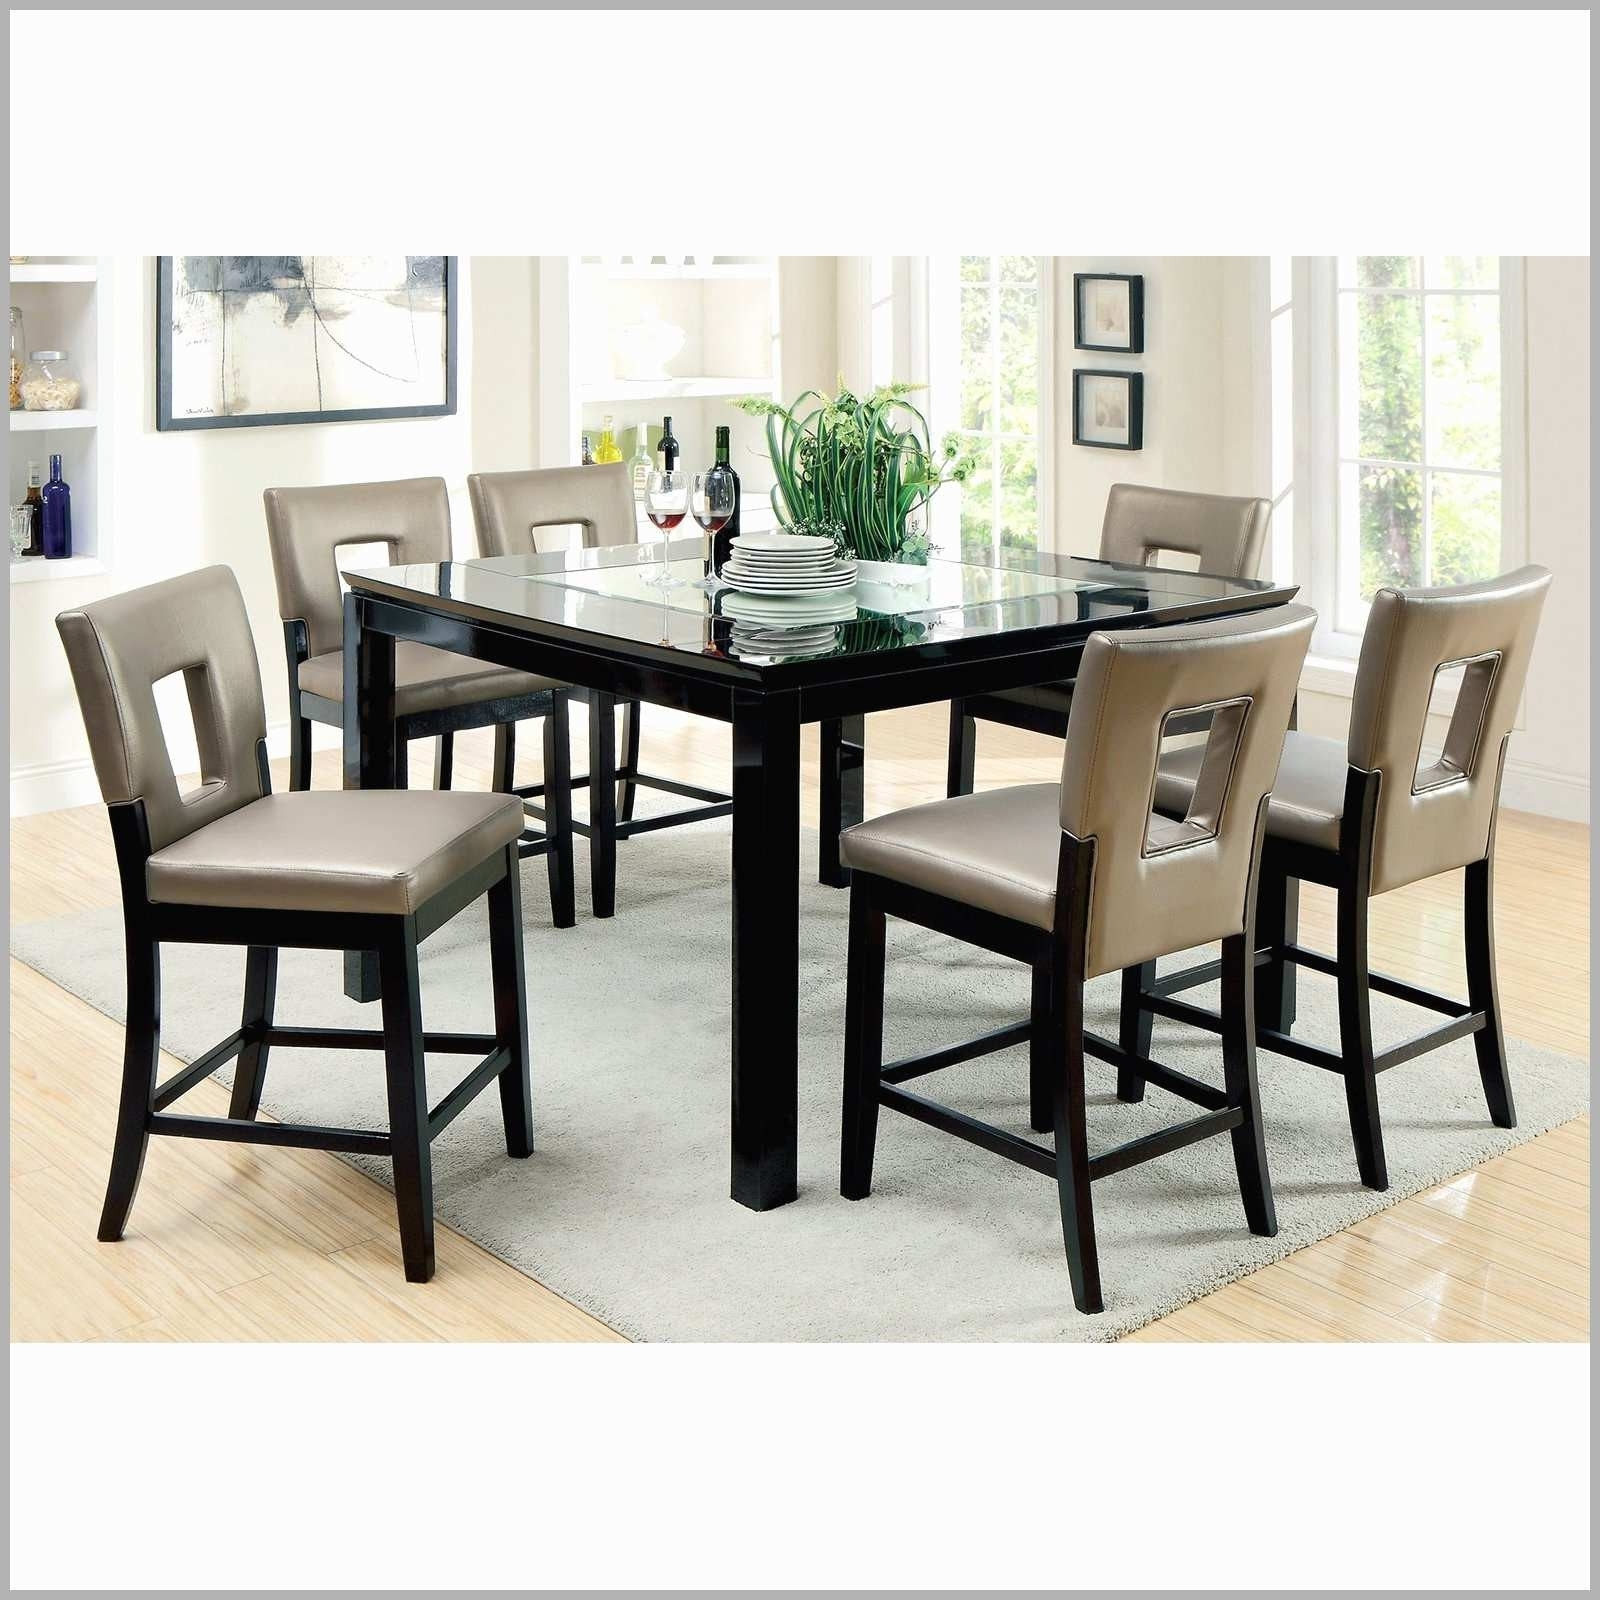 Cheap Dining Tables With Regard To Most Recent Cheap Dining Table Sets Near Me Awesome 8 Seater Dining Table Set (View 25 of 25)